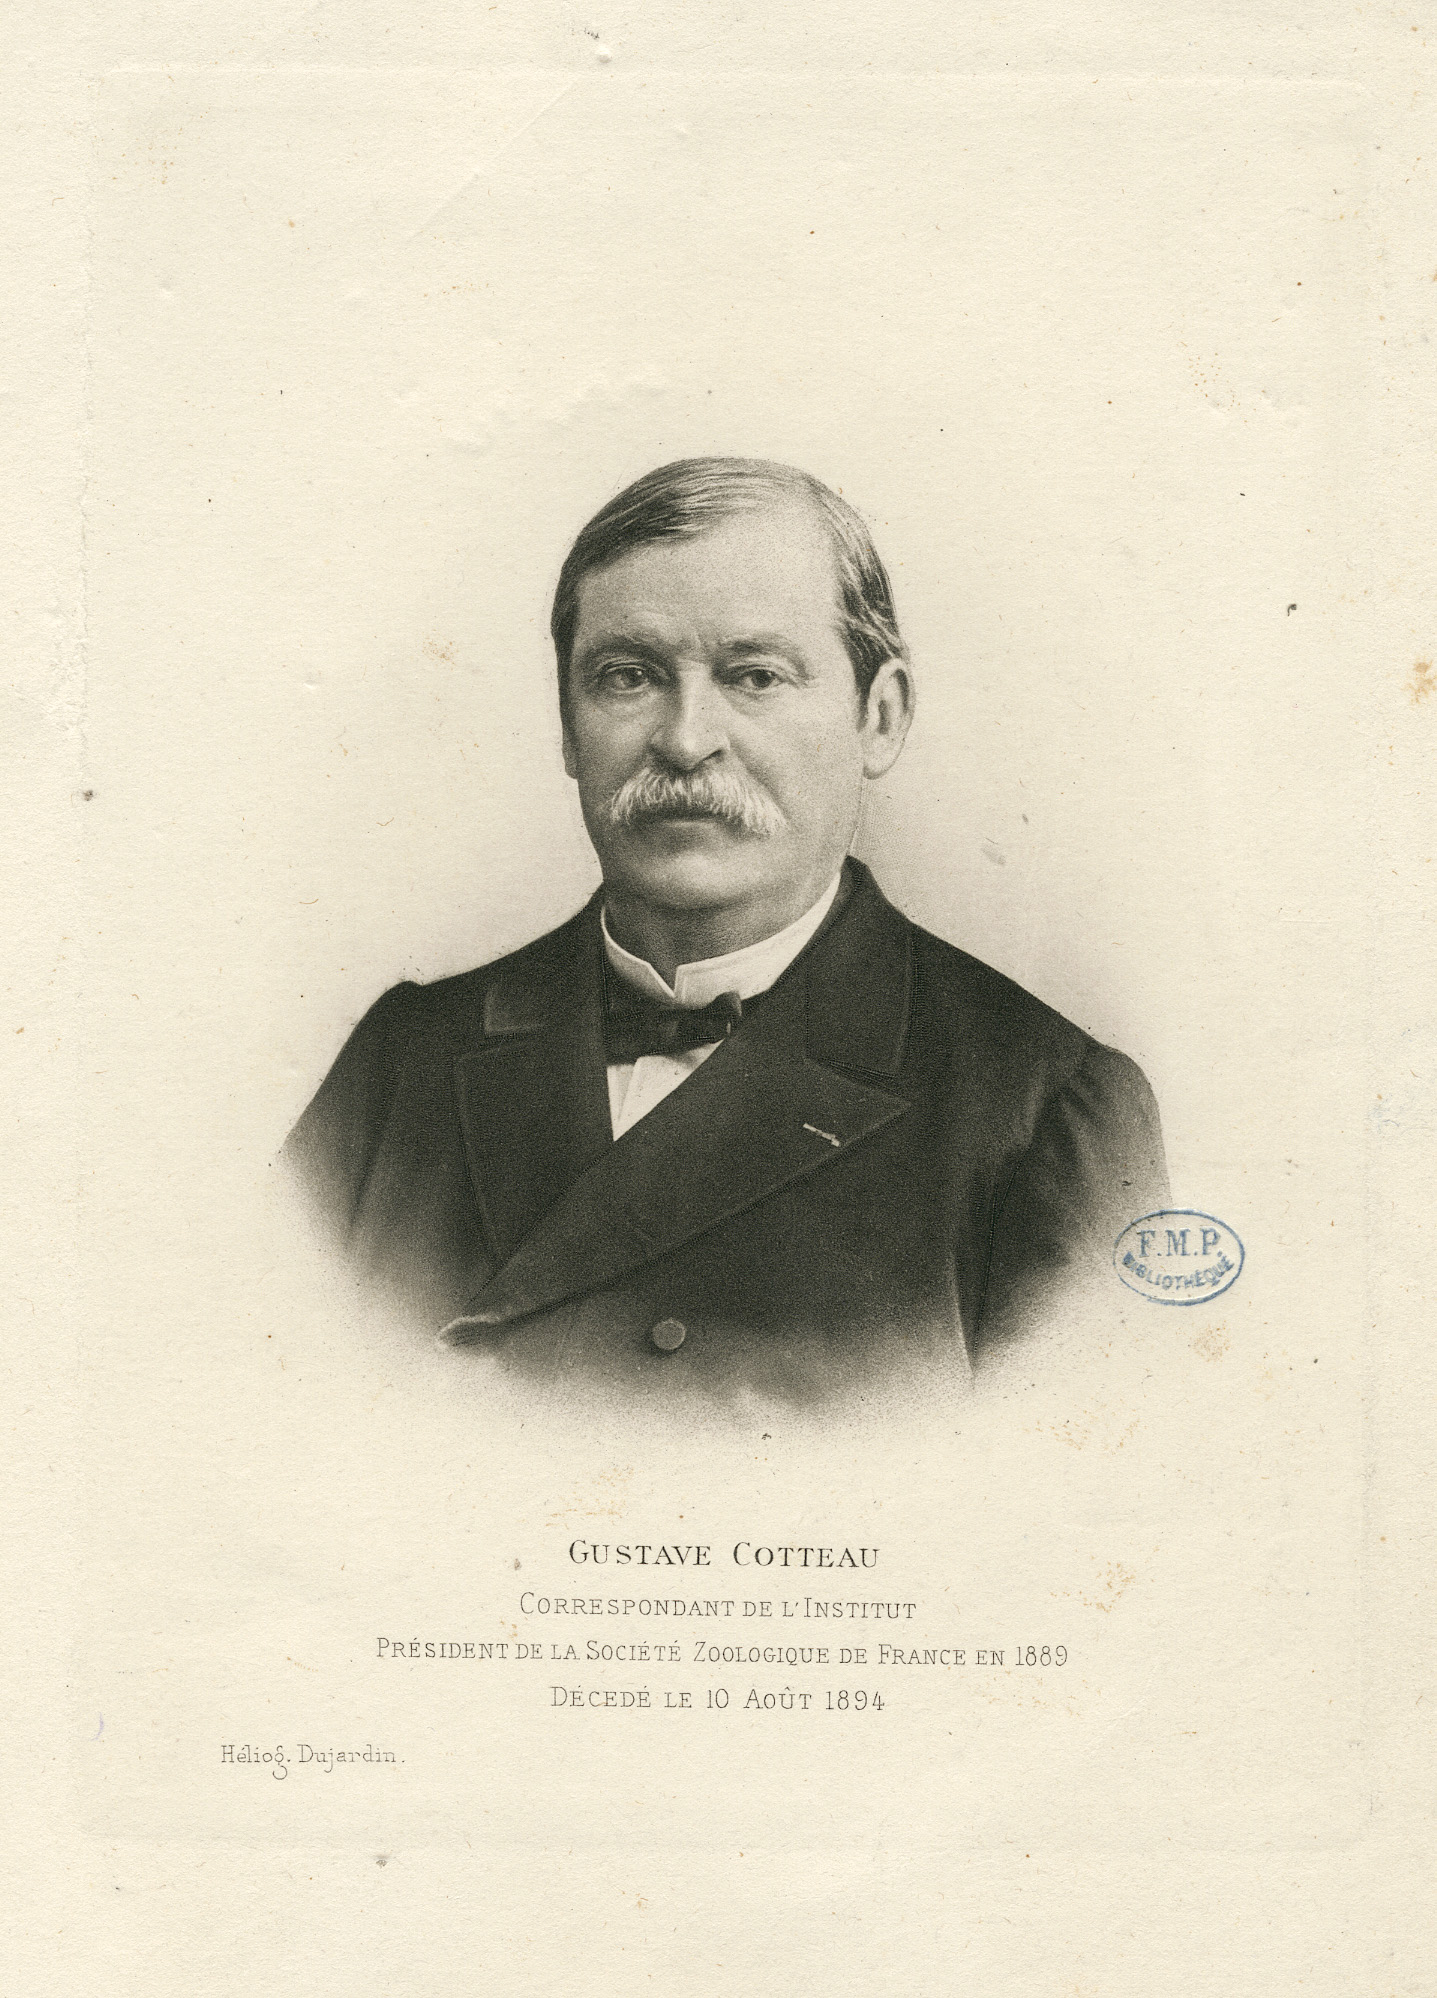 Gustave Cotteau